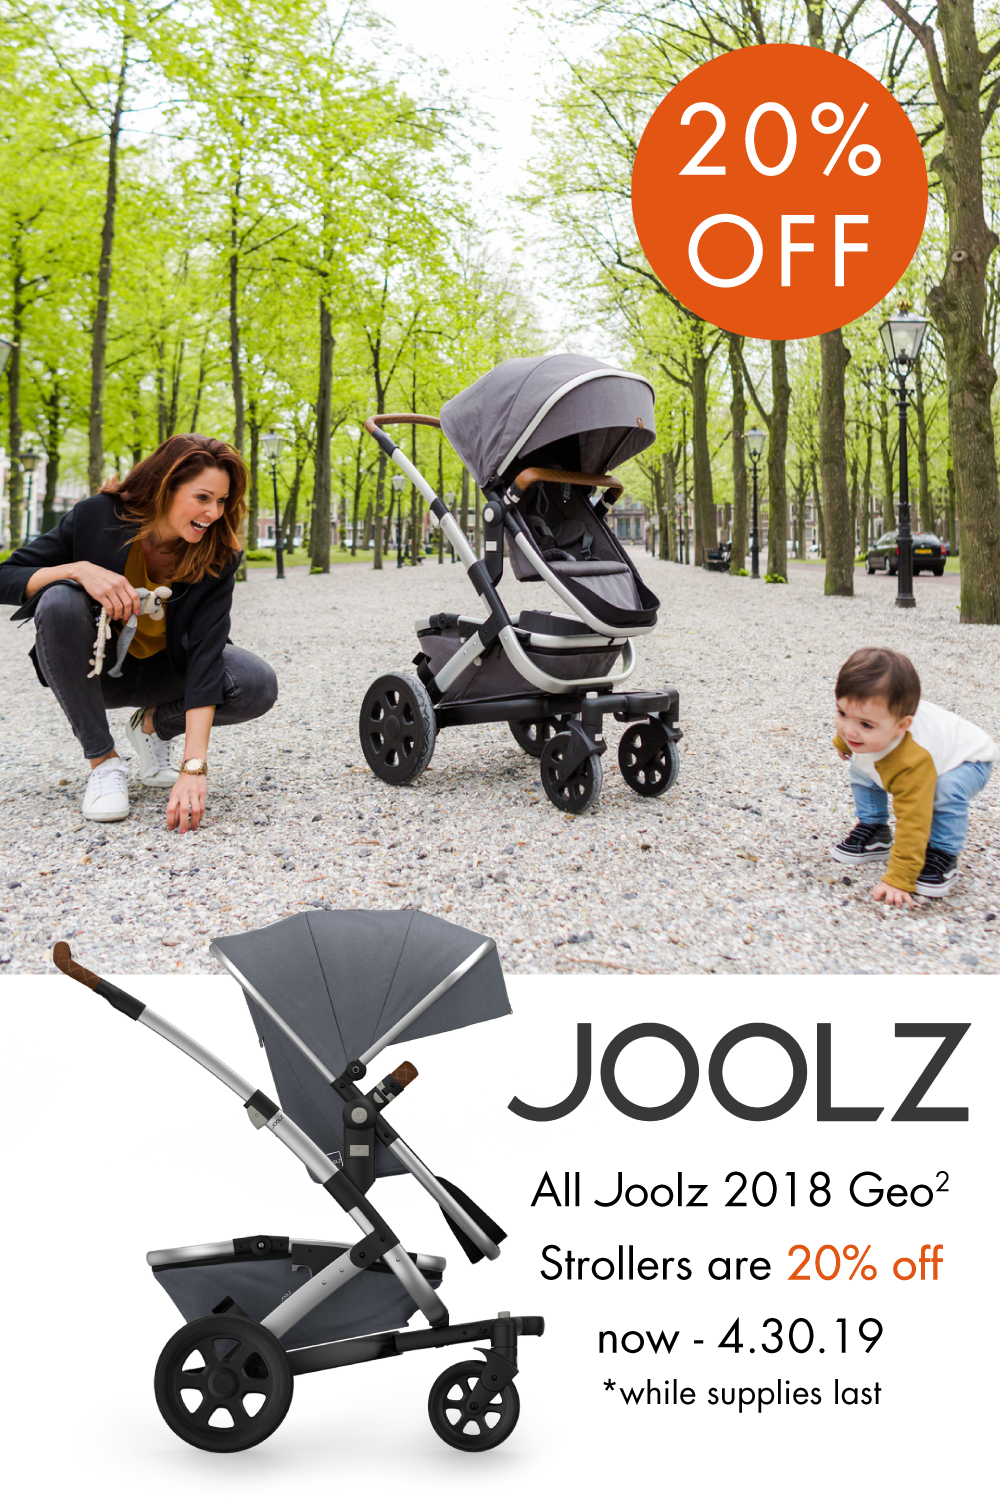 Joolz Spring Sale! All Joolz 2018 Geo2 Strollers are 20